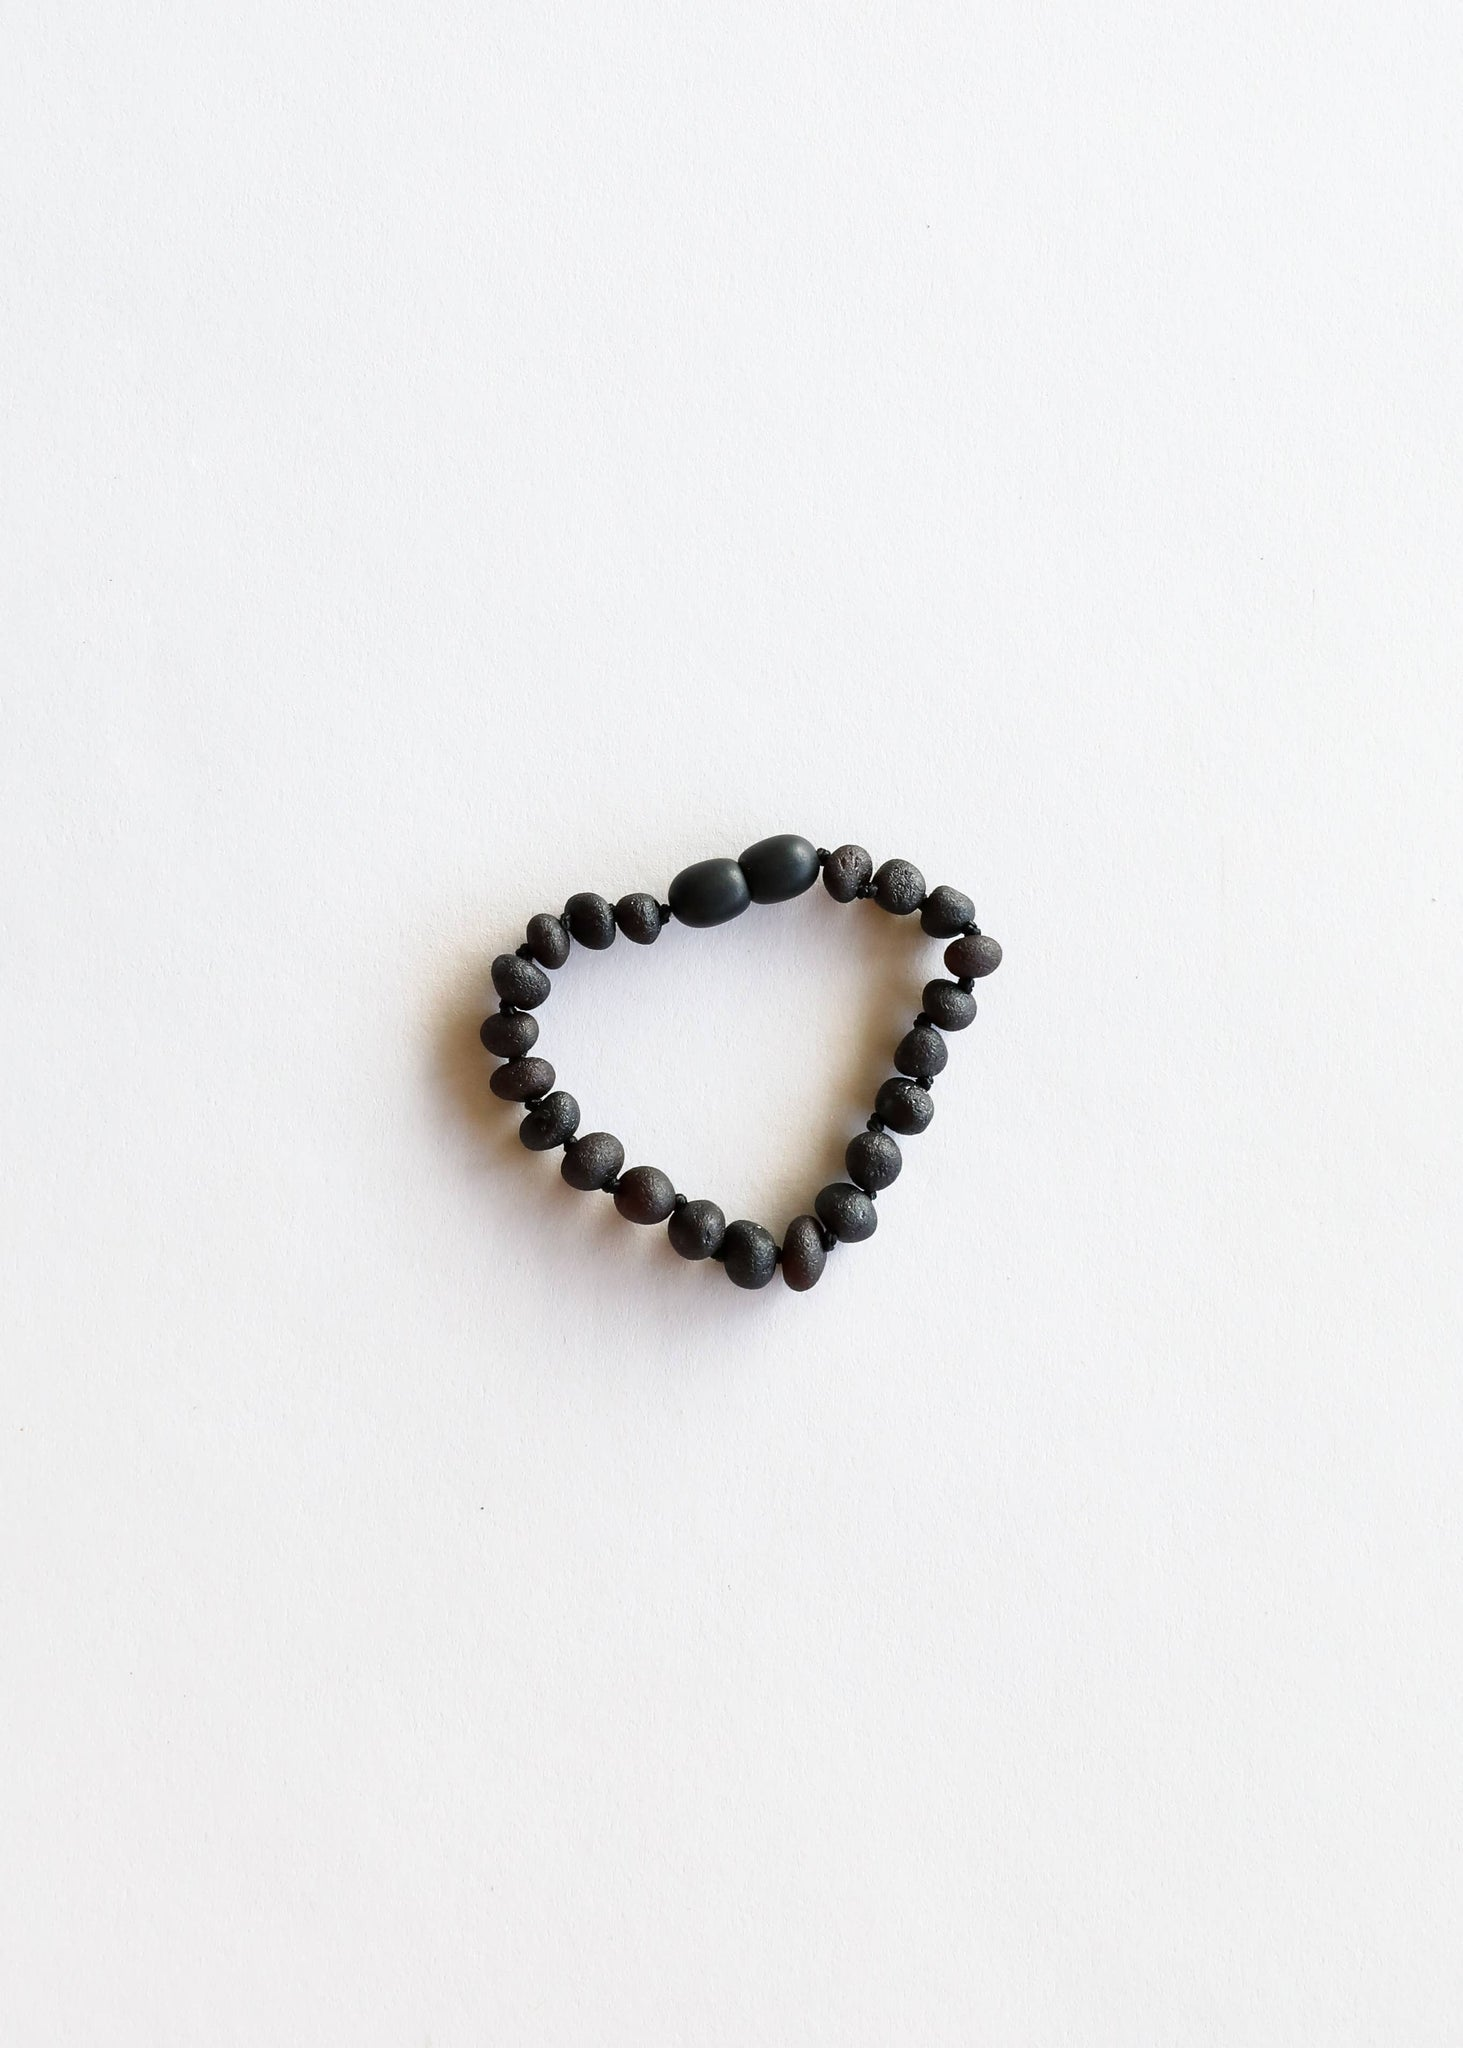 CanyonLeaf Children's Raw Black Amber Bracelet or Anklet